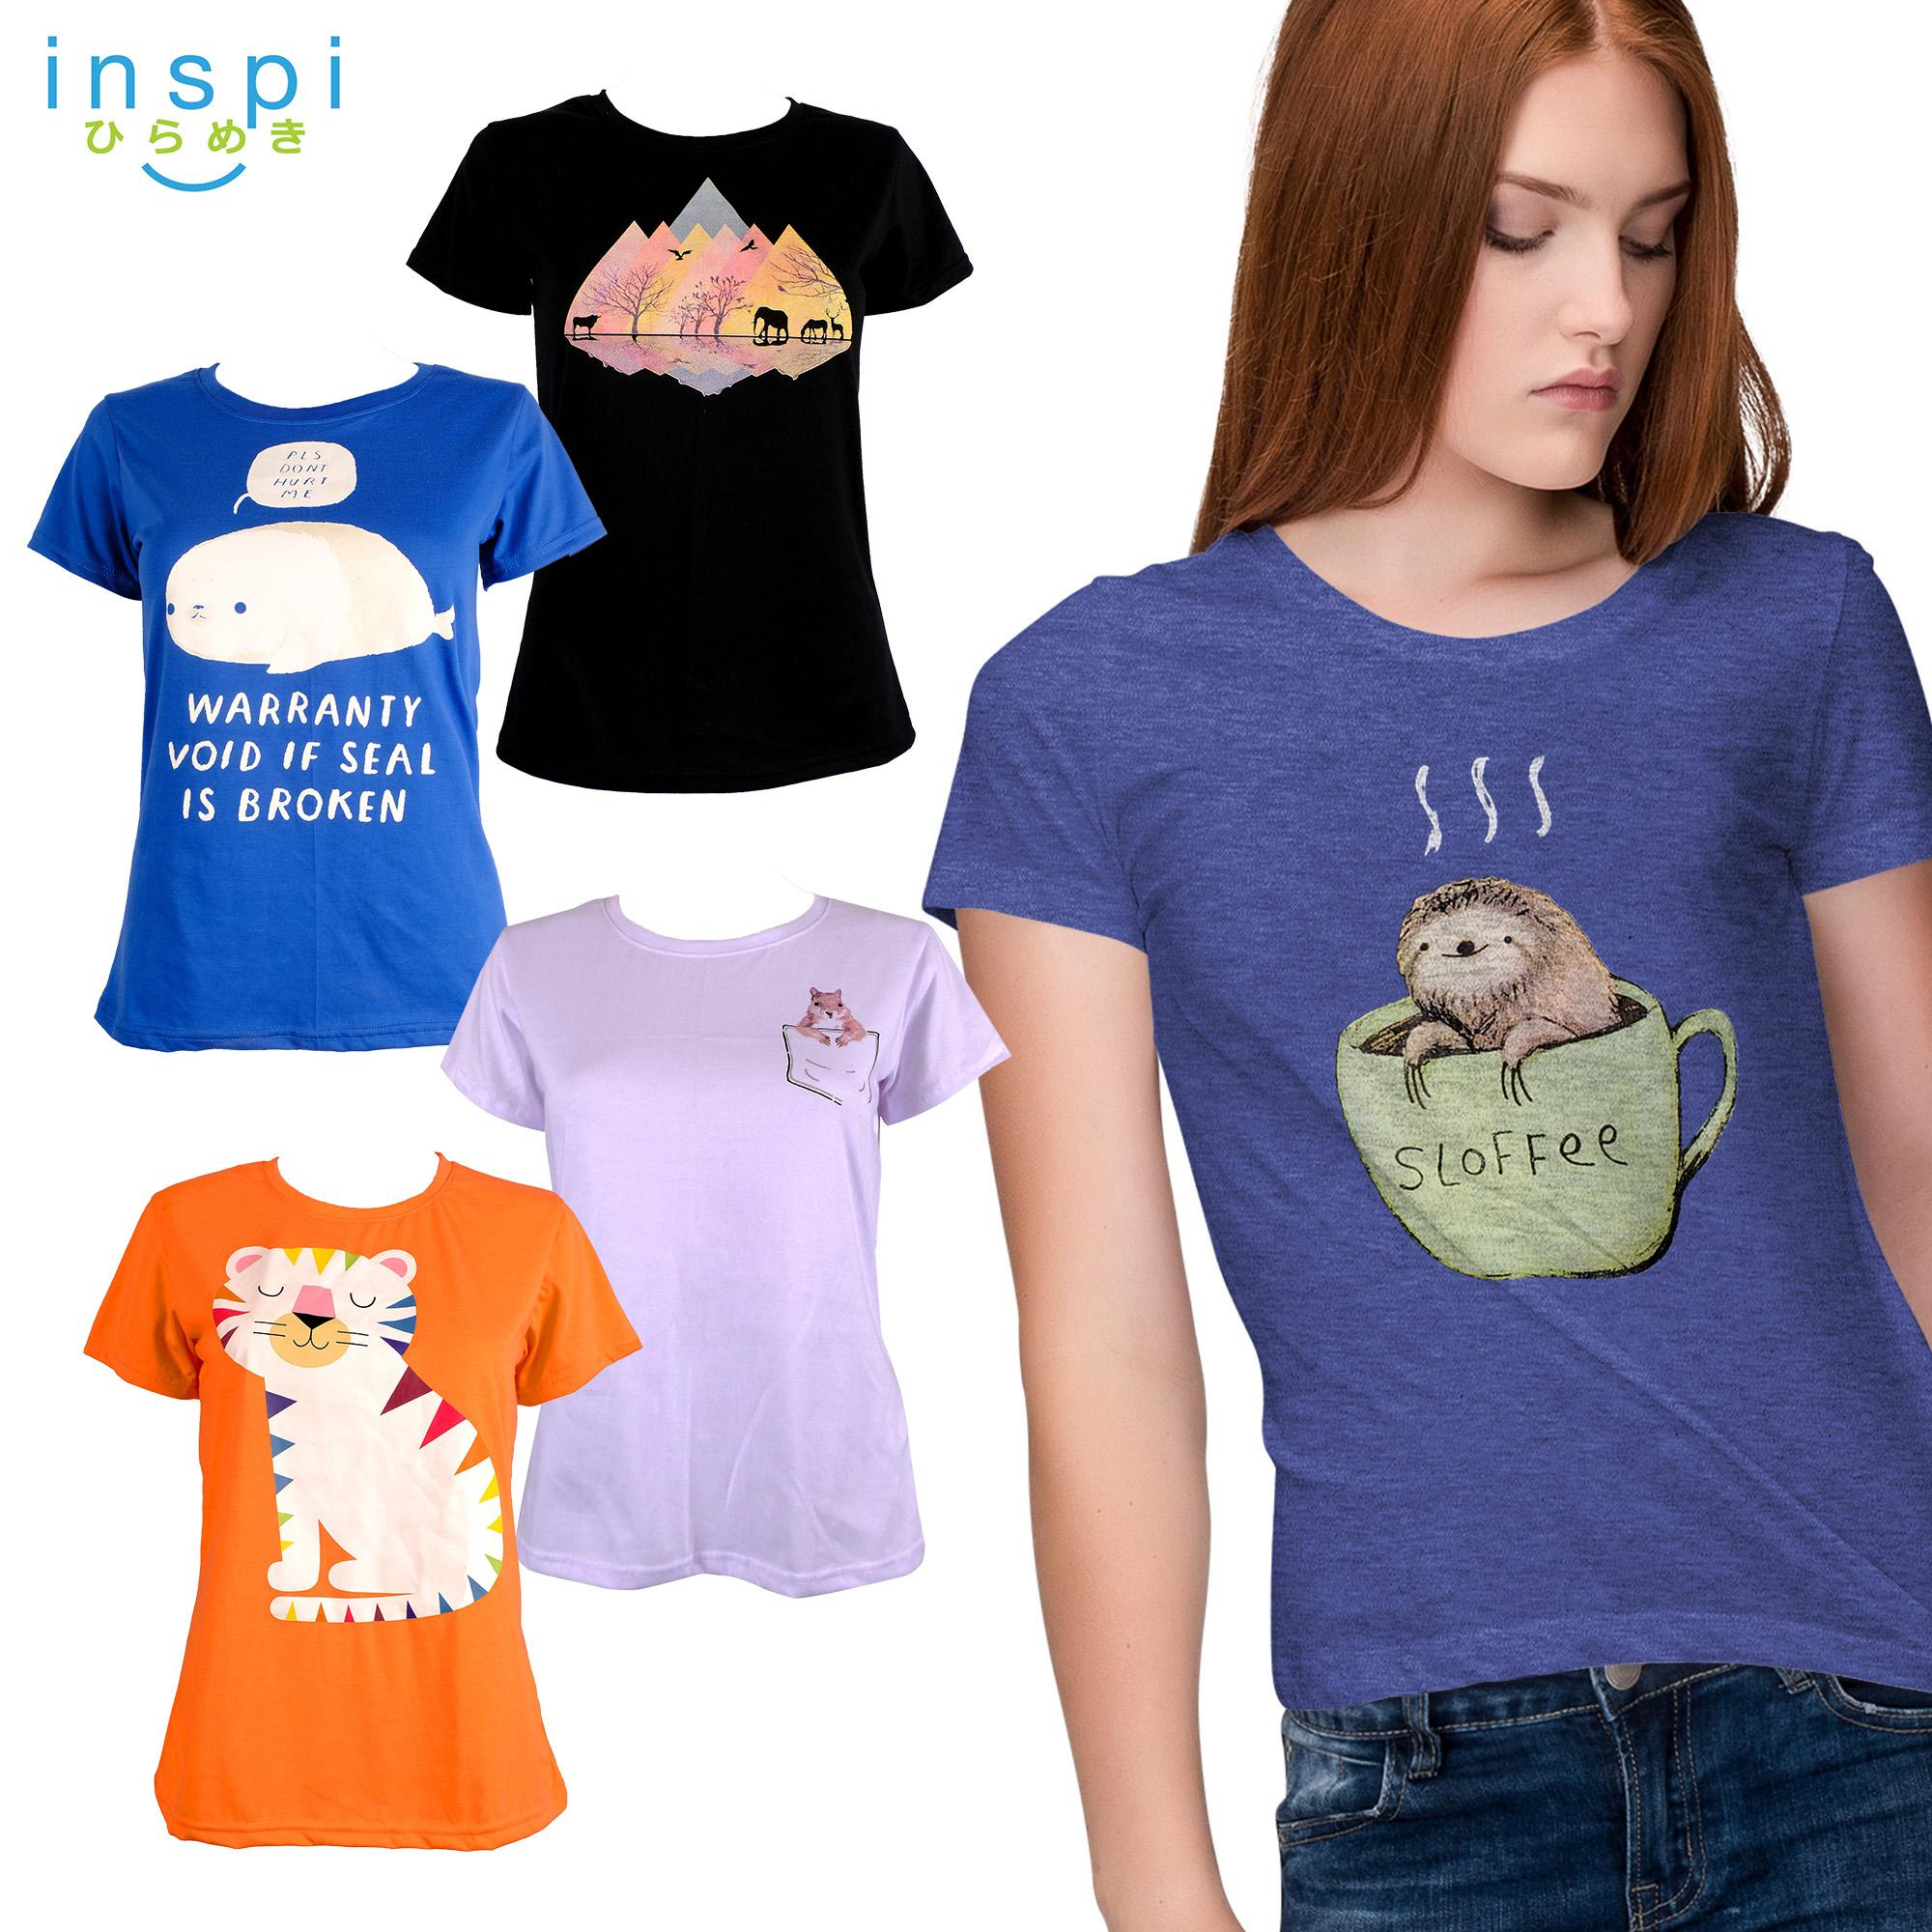 e04862f3b62189 INSPI Tees Ladies Pet Collection tshirt printed graphic tee Ladies t shirt  shirts women tshirts for